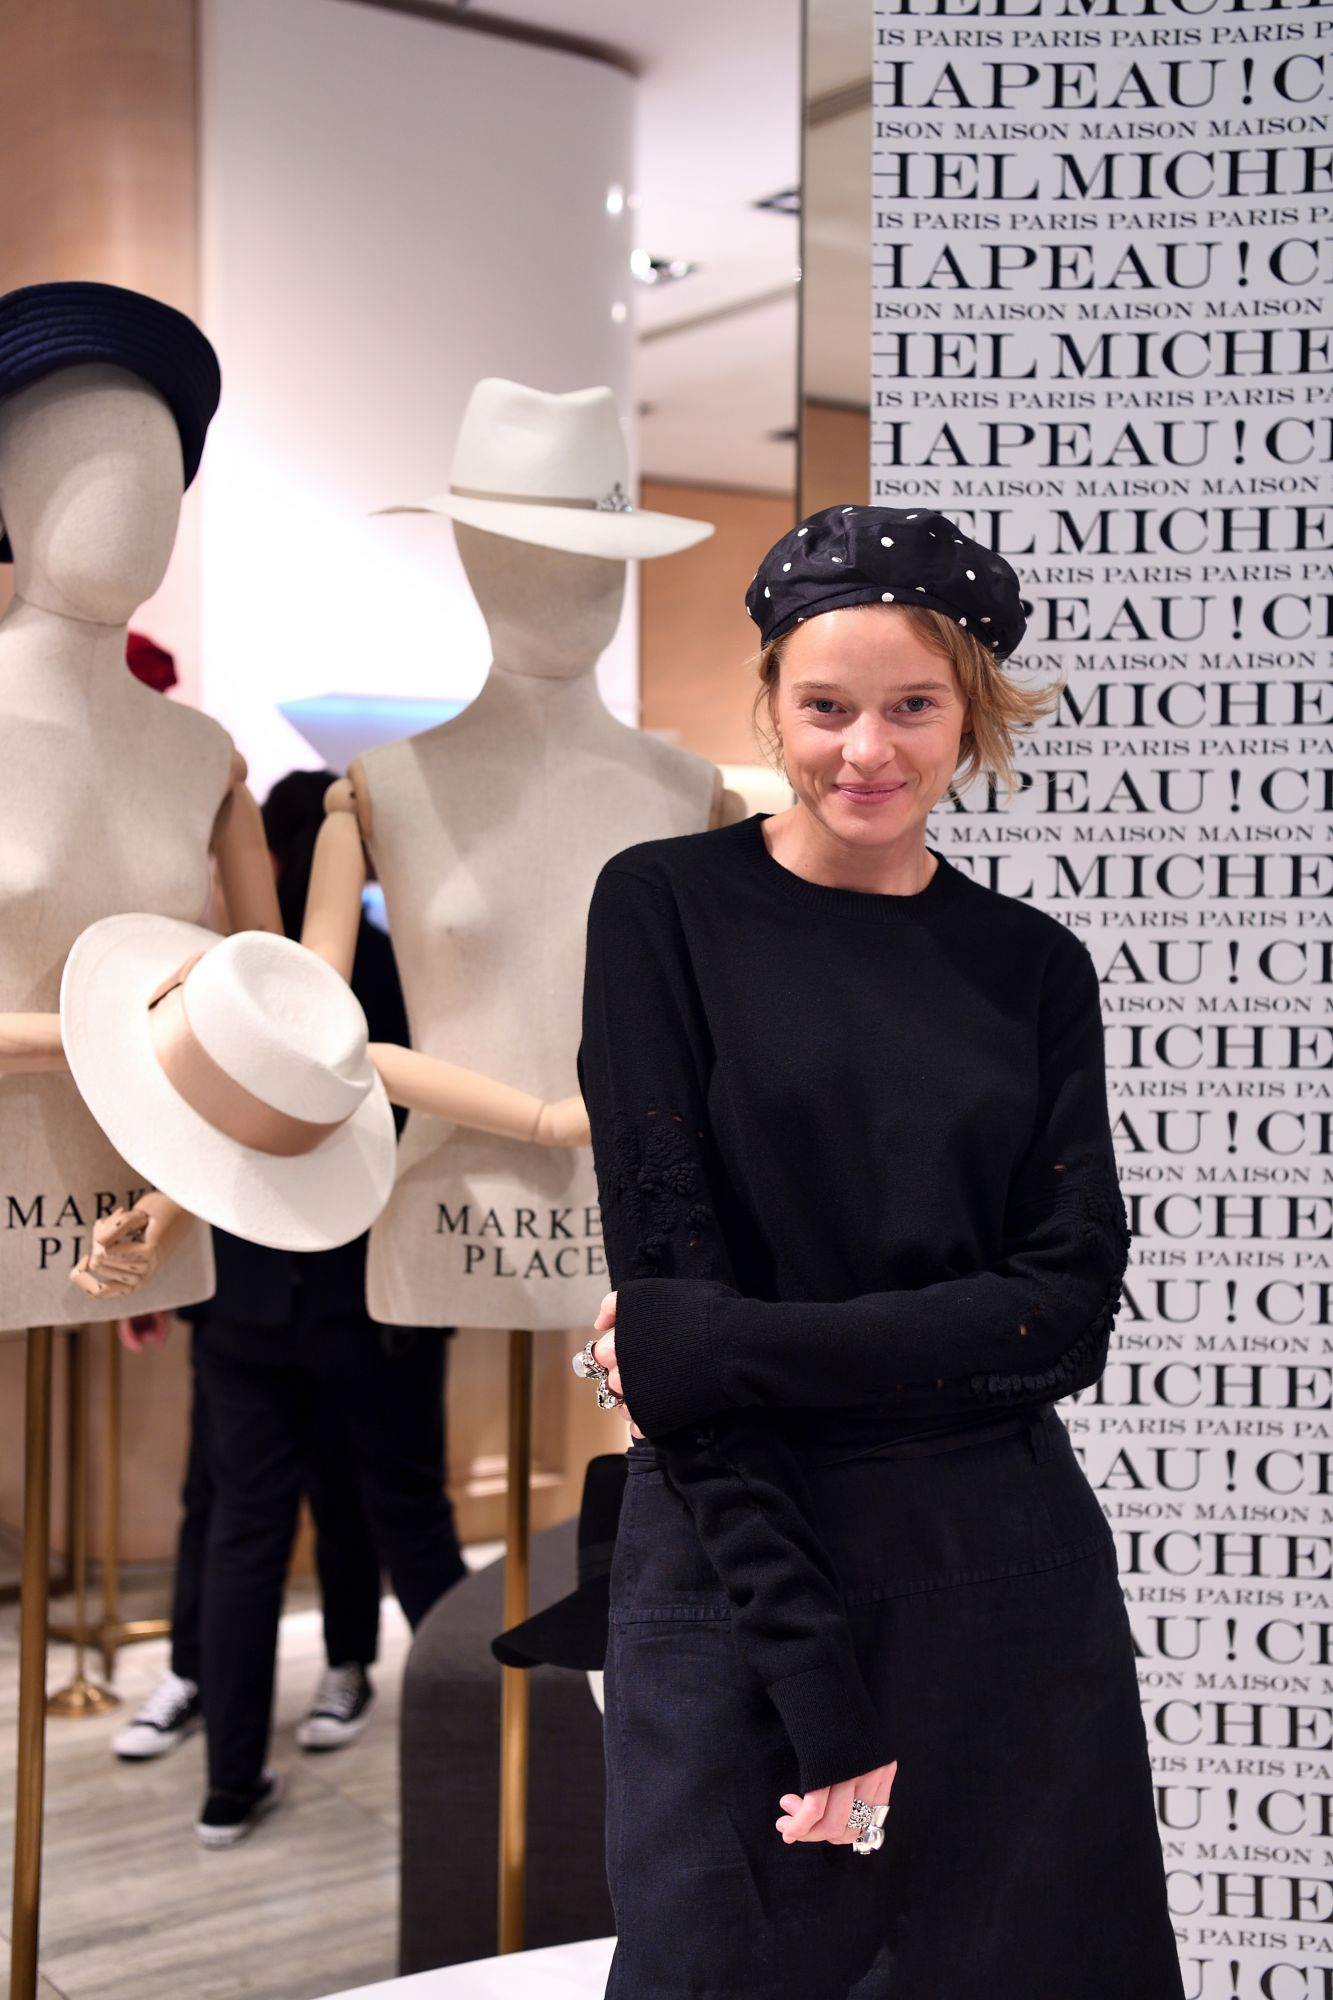 5 Minutes With Priscilla Royer Of Chanel-Owned Hat Brand Maison Michel